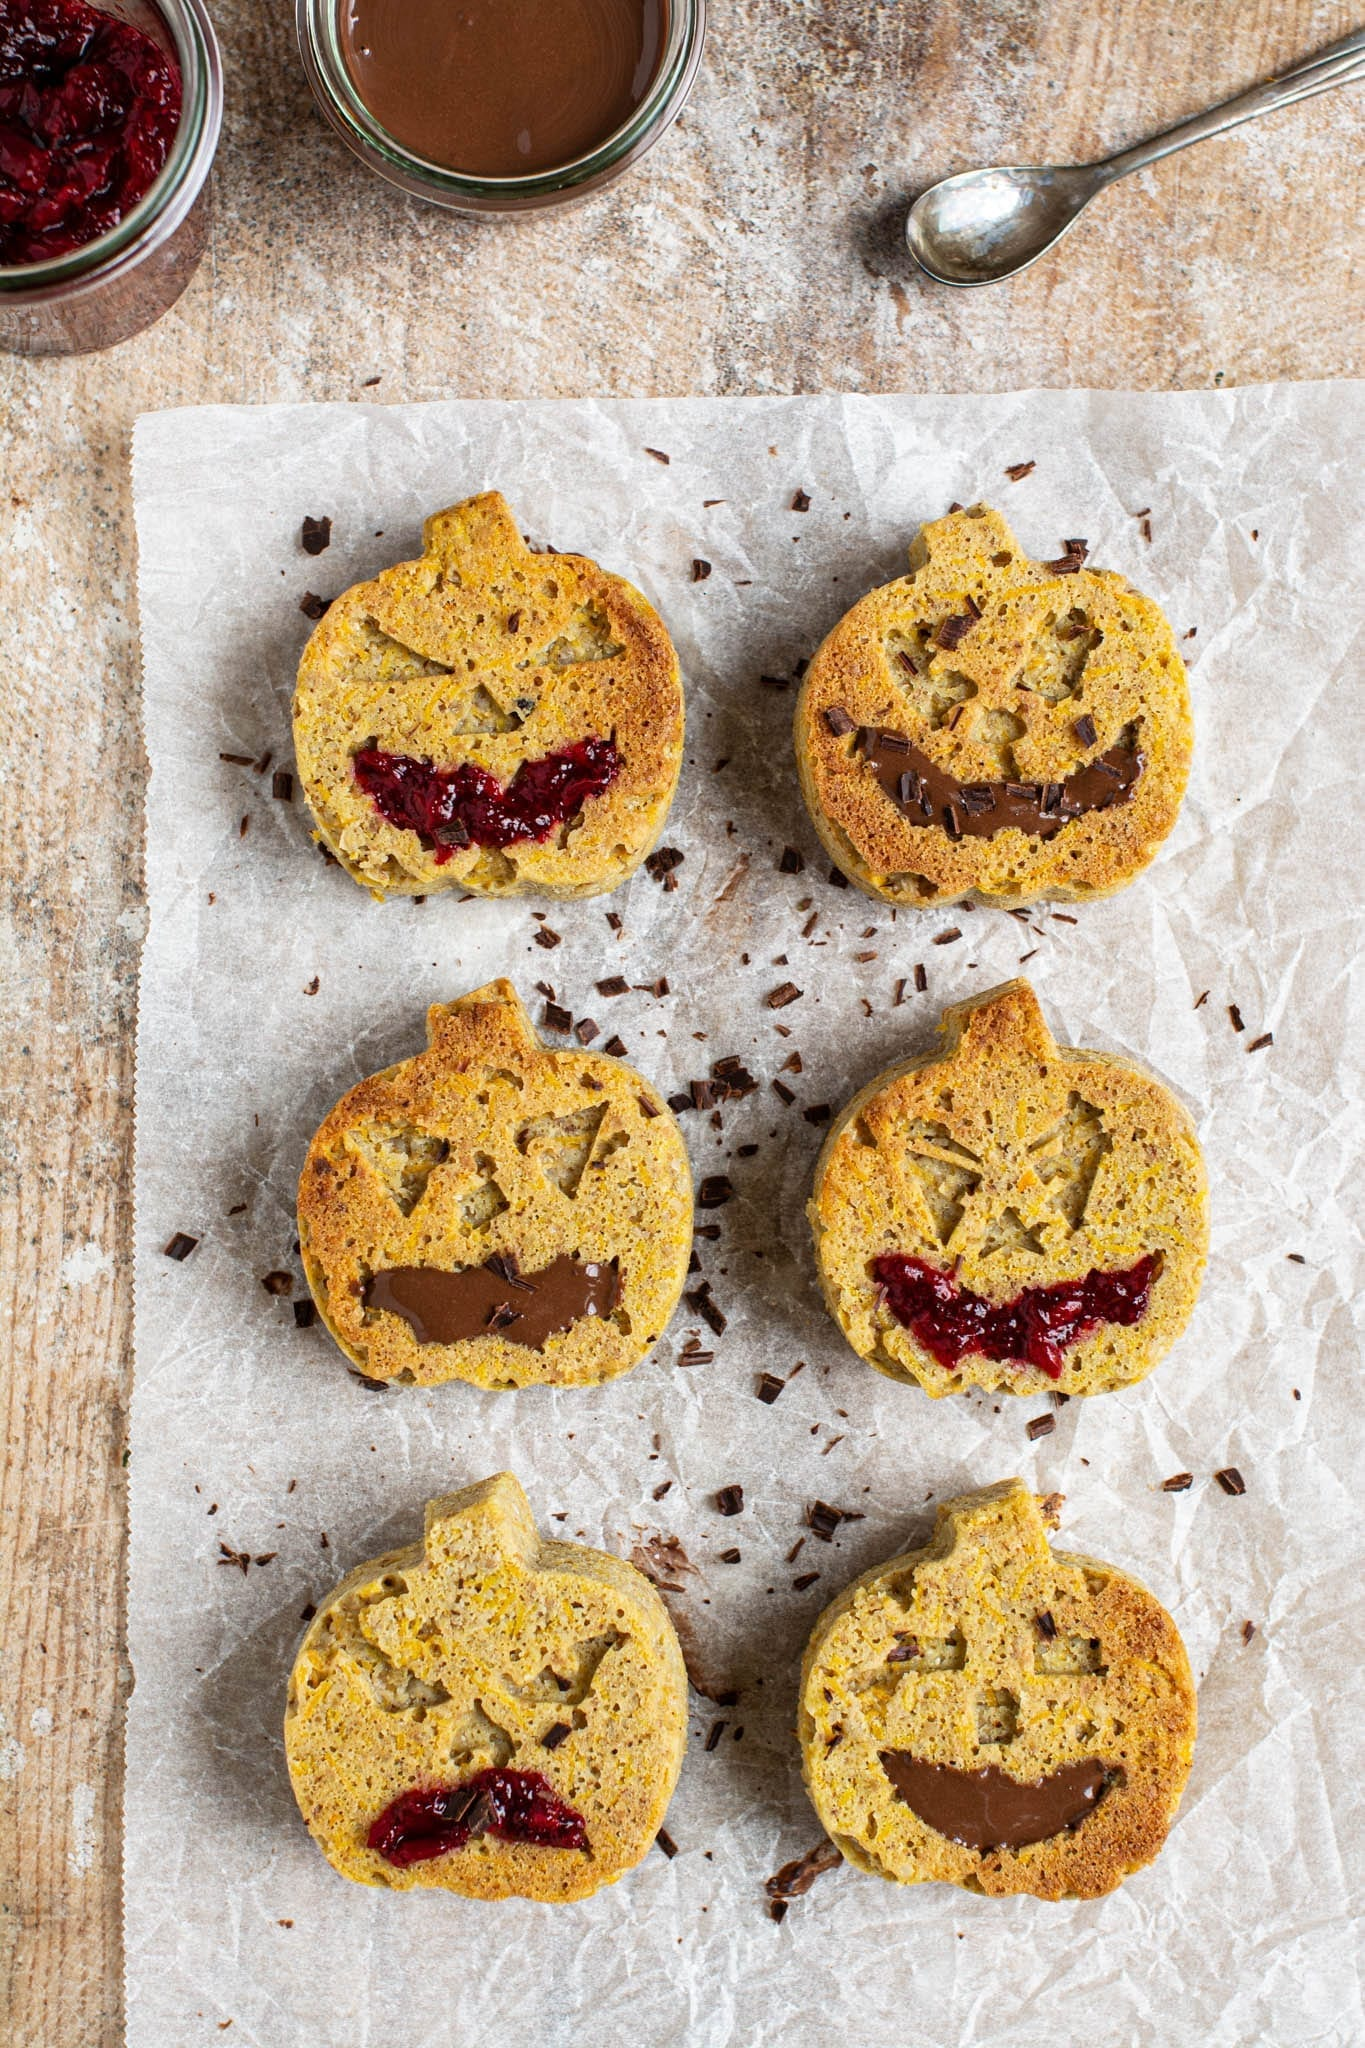 Moist and delicious Halloween butternut squash muffins that are gluten-free, oil-free, low glycemic and vegan.